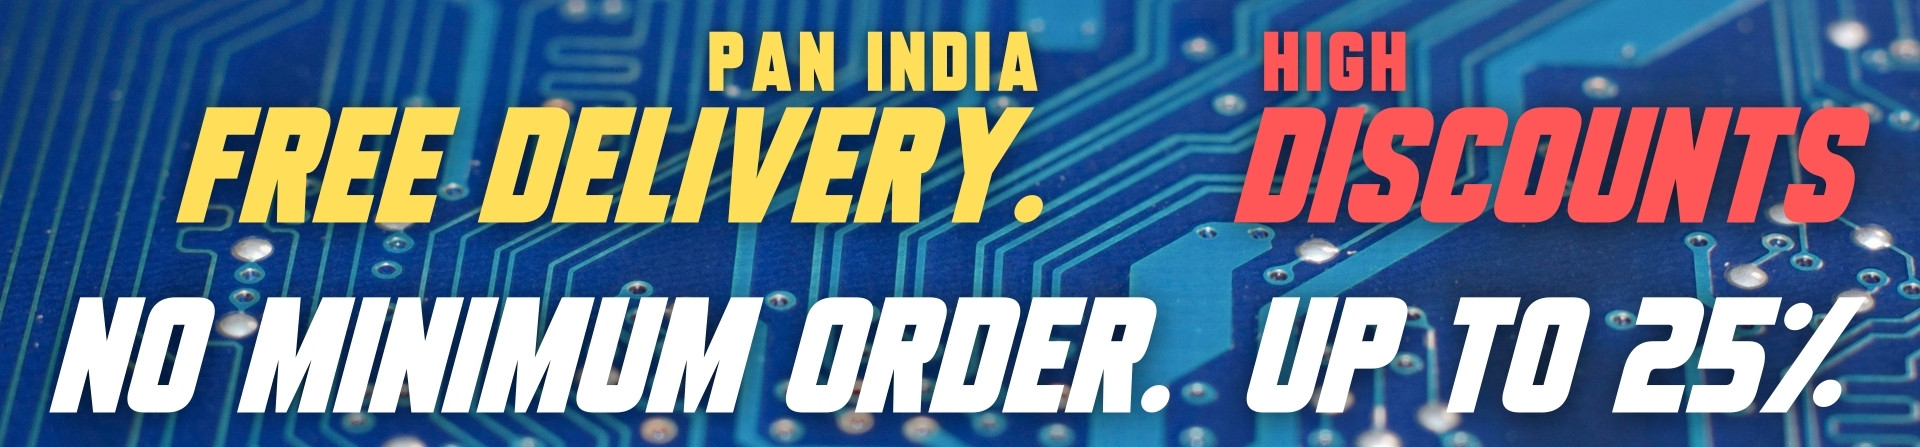 High Discounts and Free Delivery on Mobile Battery Power Bank Car Charger Wall Charger LED Light USB Cable AUX Cable Made in India by ERD Technologies Global India